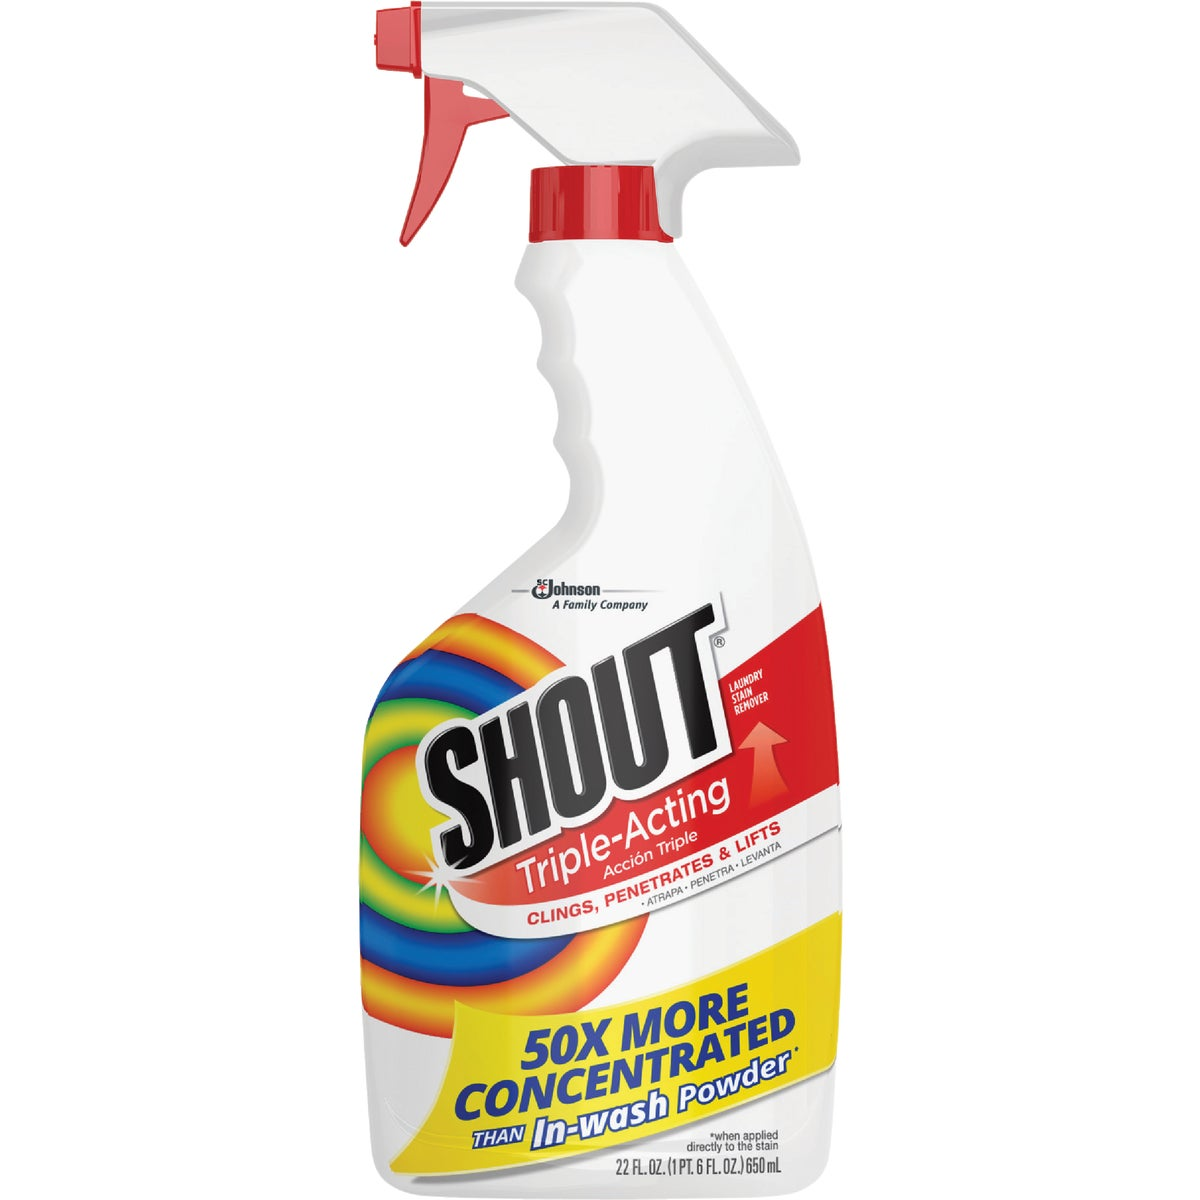 Shout Triple-Acting Stain Remover, 2251